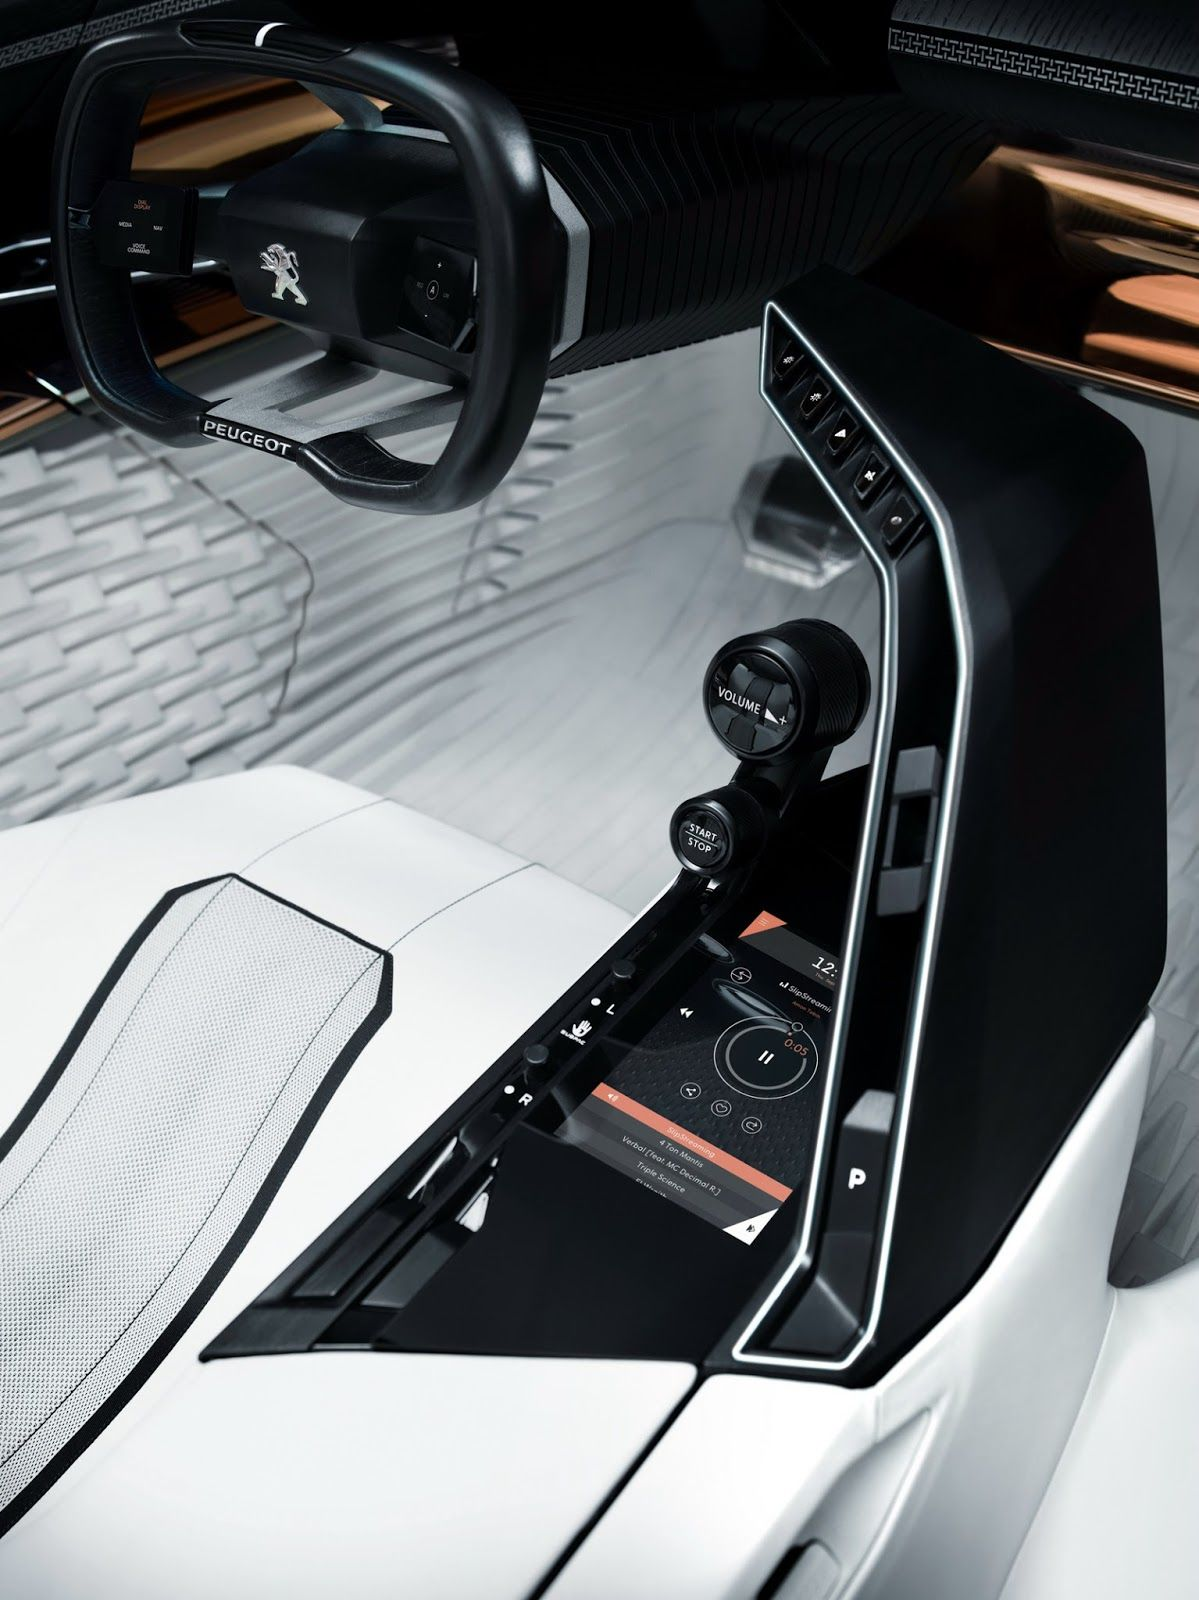 Peugeot's New Fractal Coupe-Hatch-Convertible Concept In All Its Photo  Glory  Car Interior DesignAuto DesignAutomotive ...